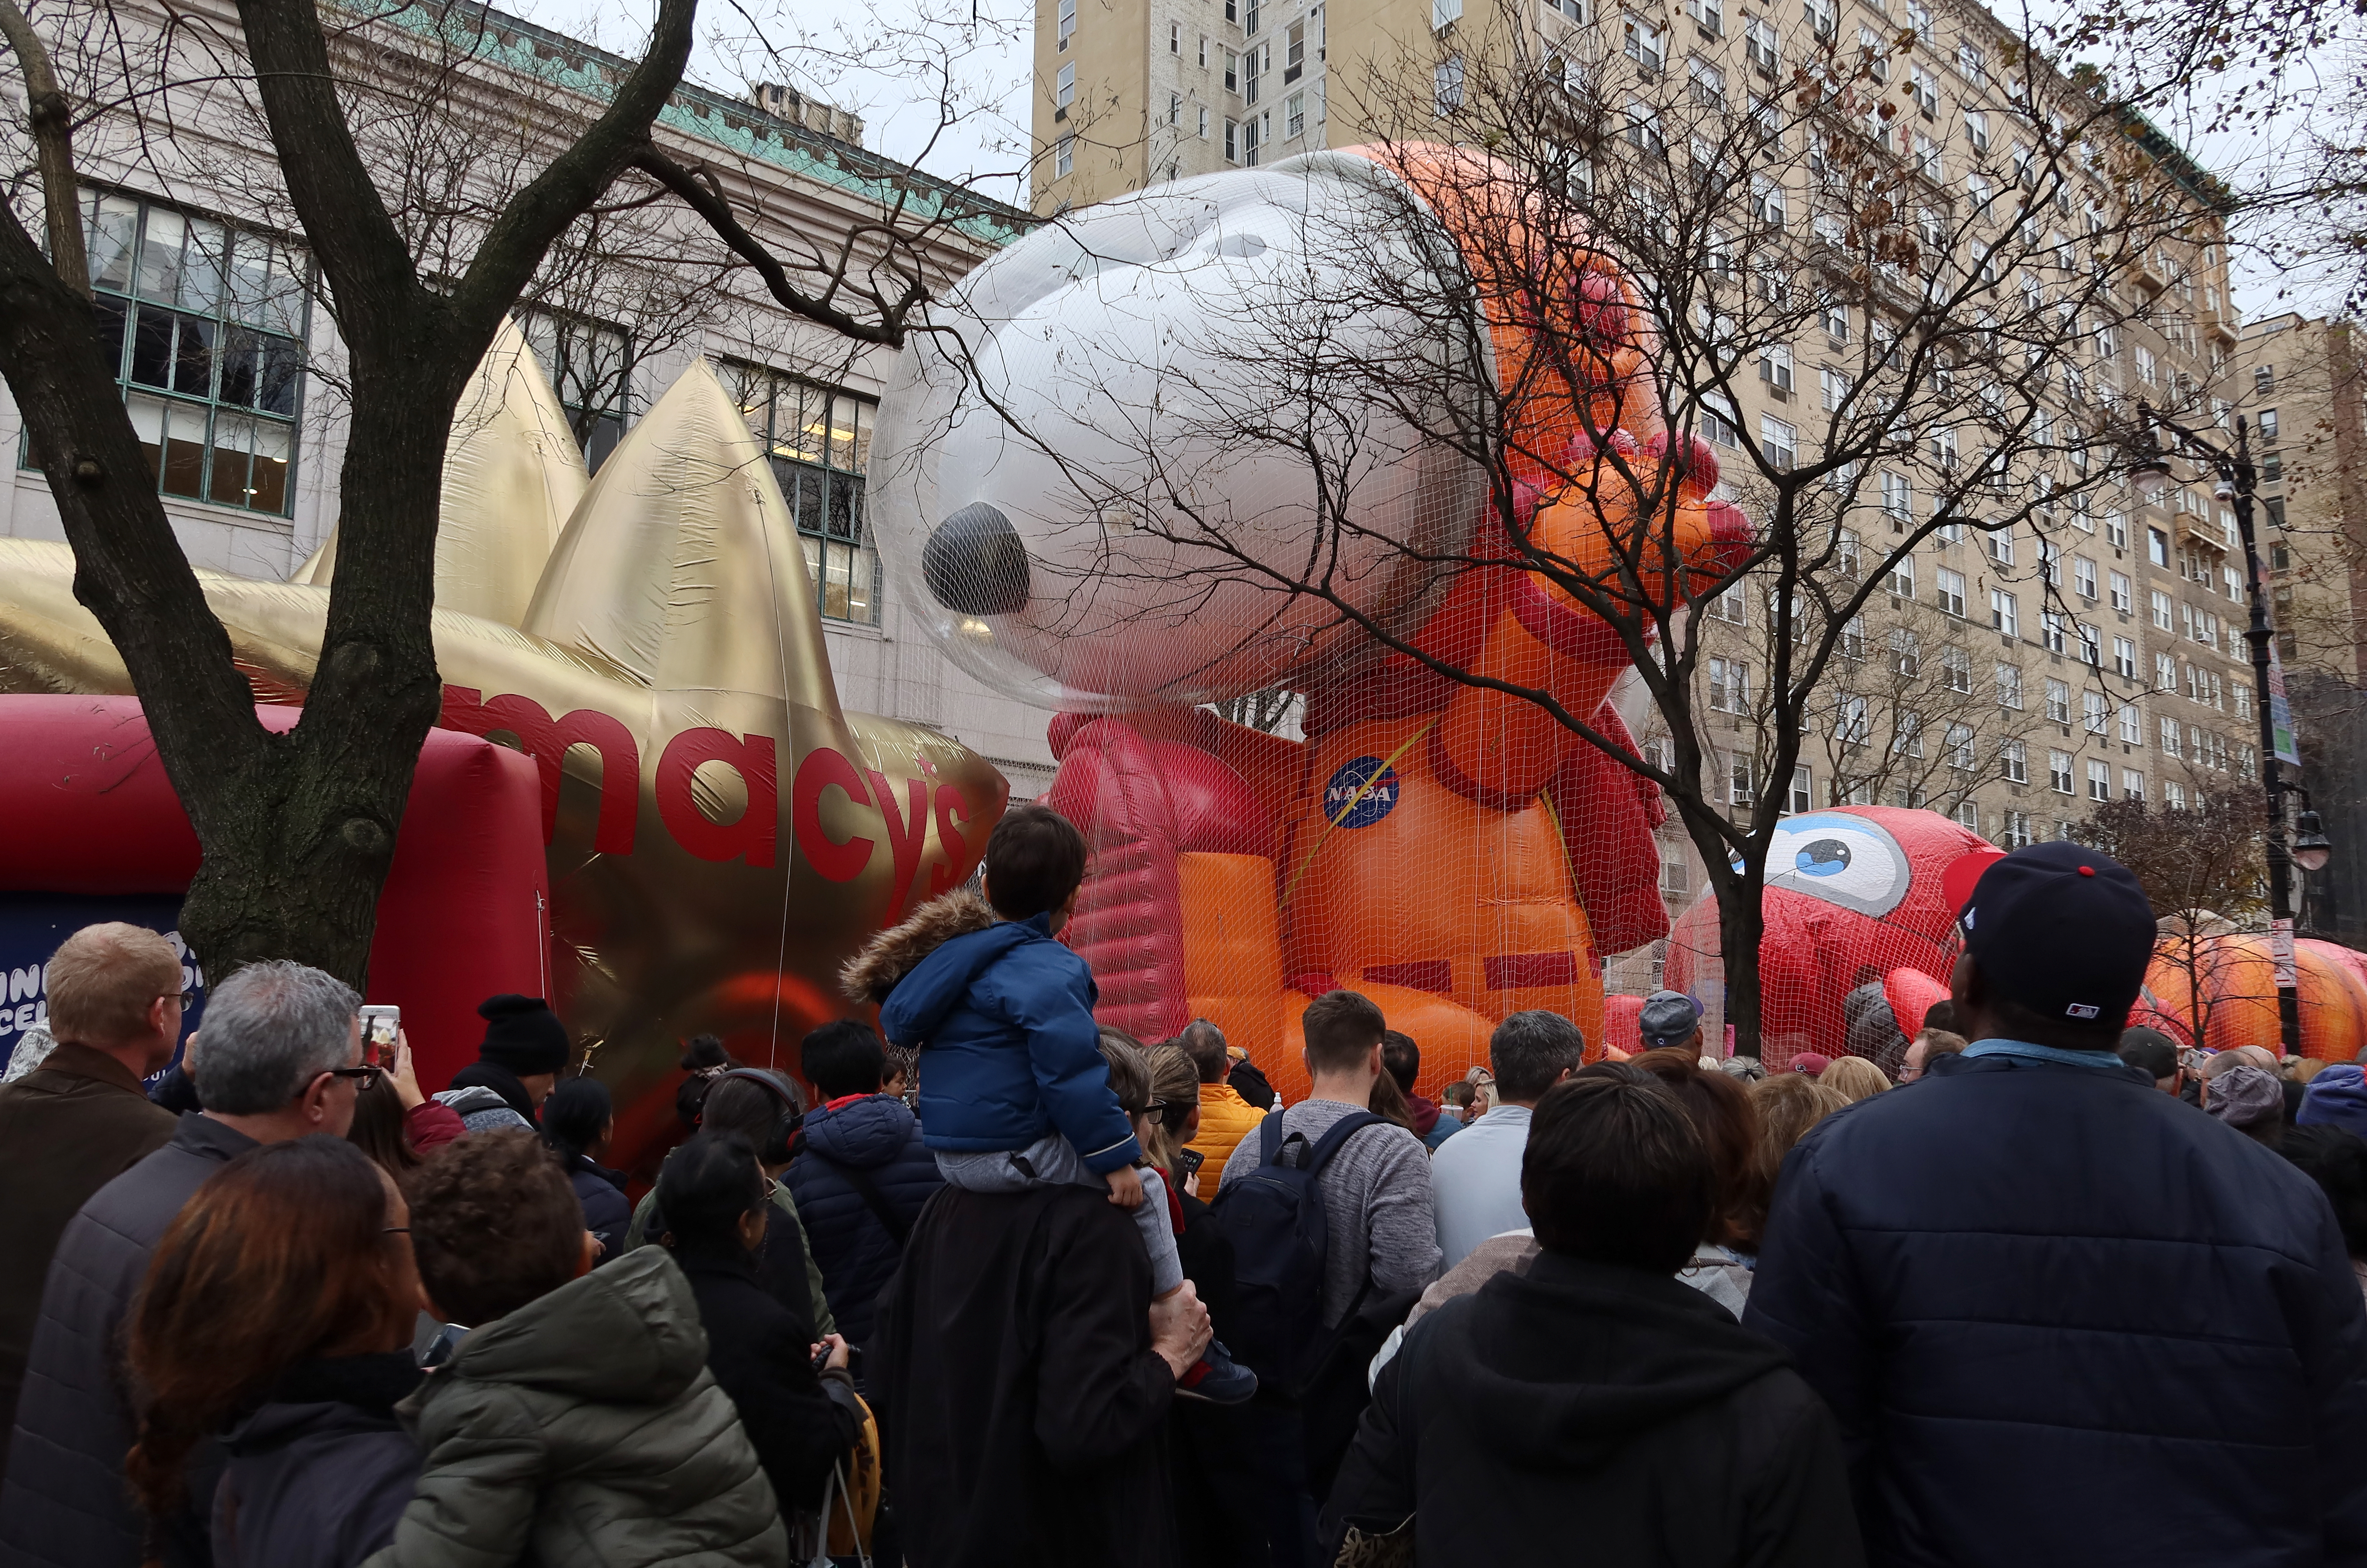 Balloons Inflated for the Annual Macy's Thanksgiving Day Parade in New York City